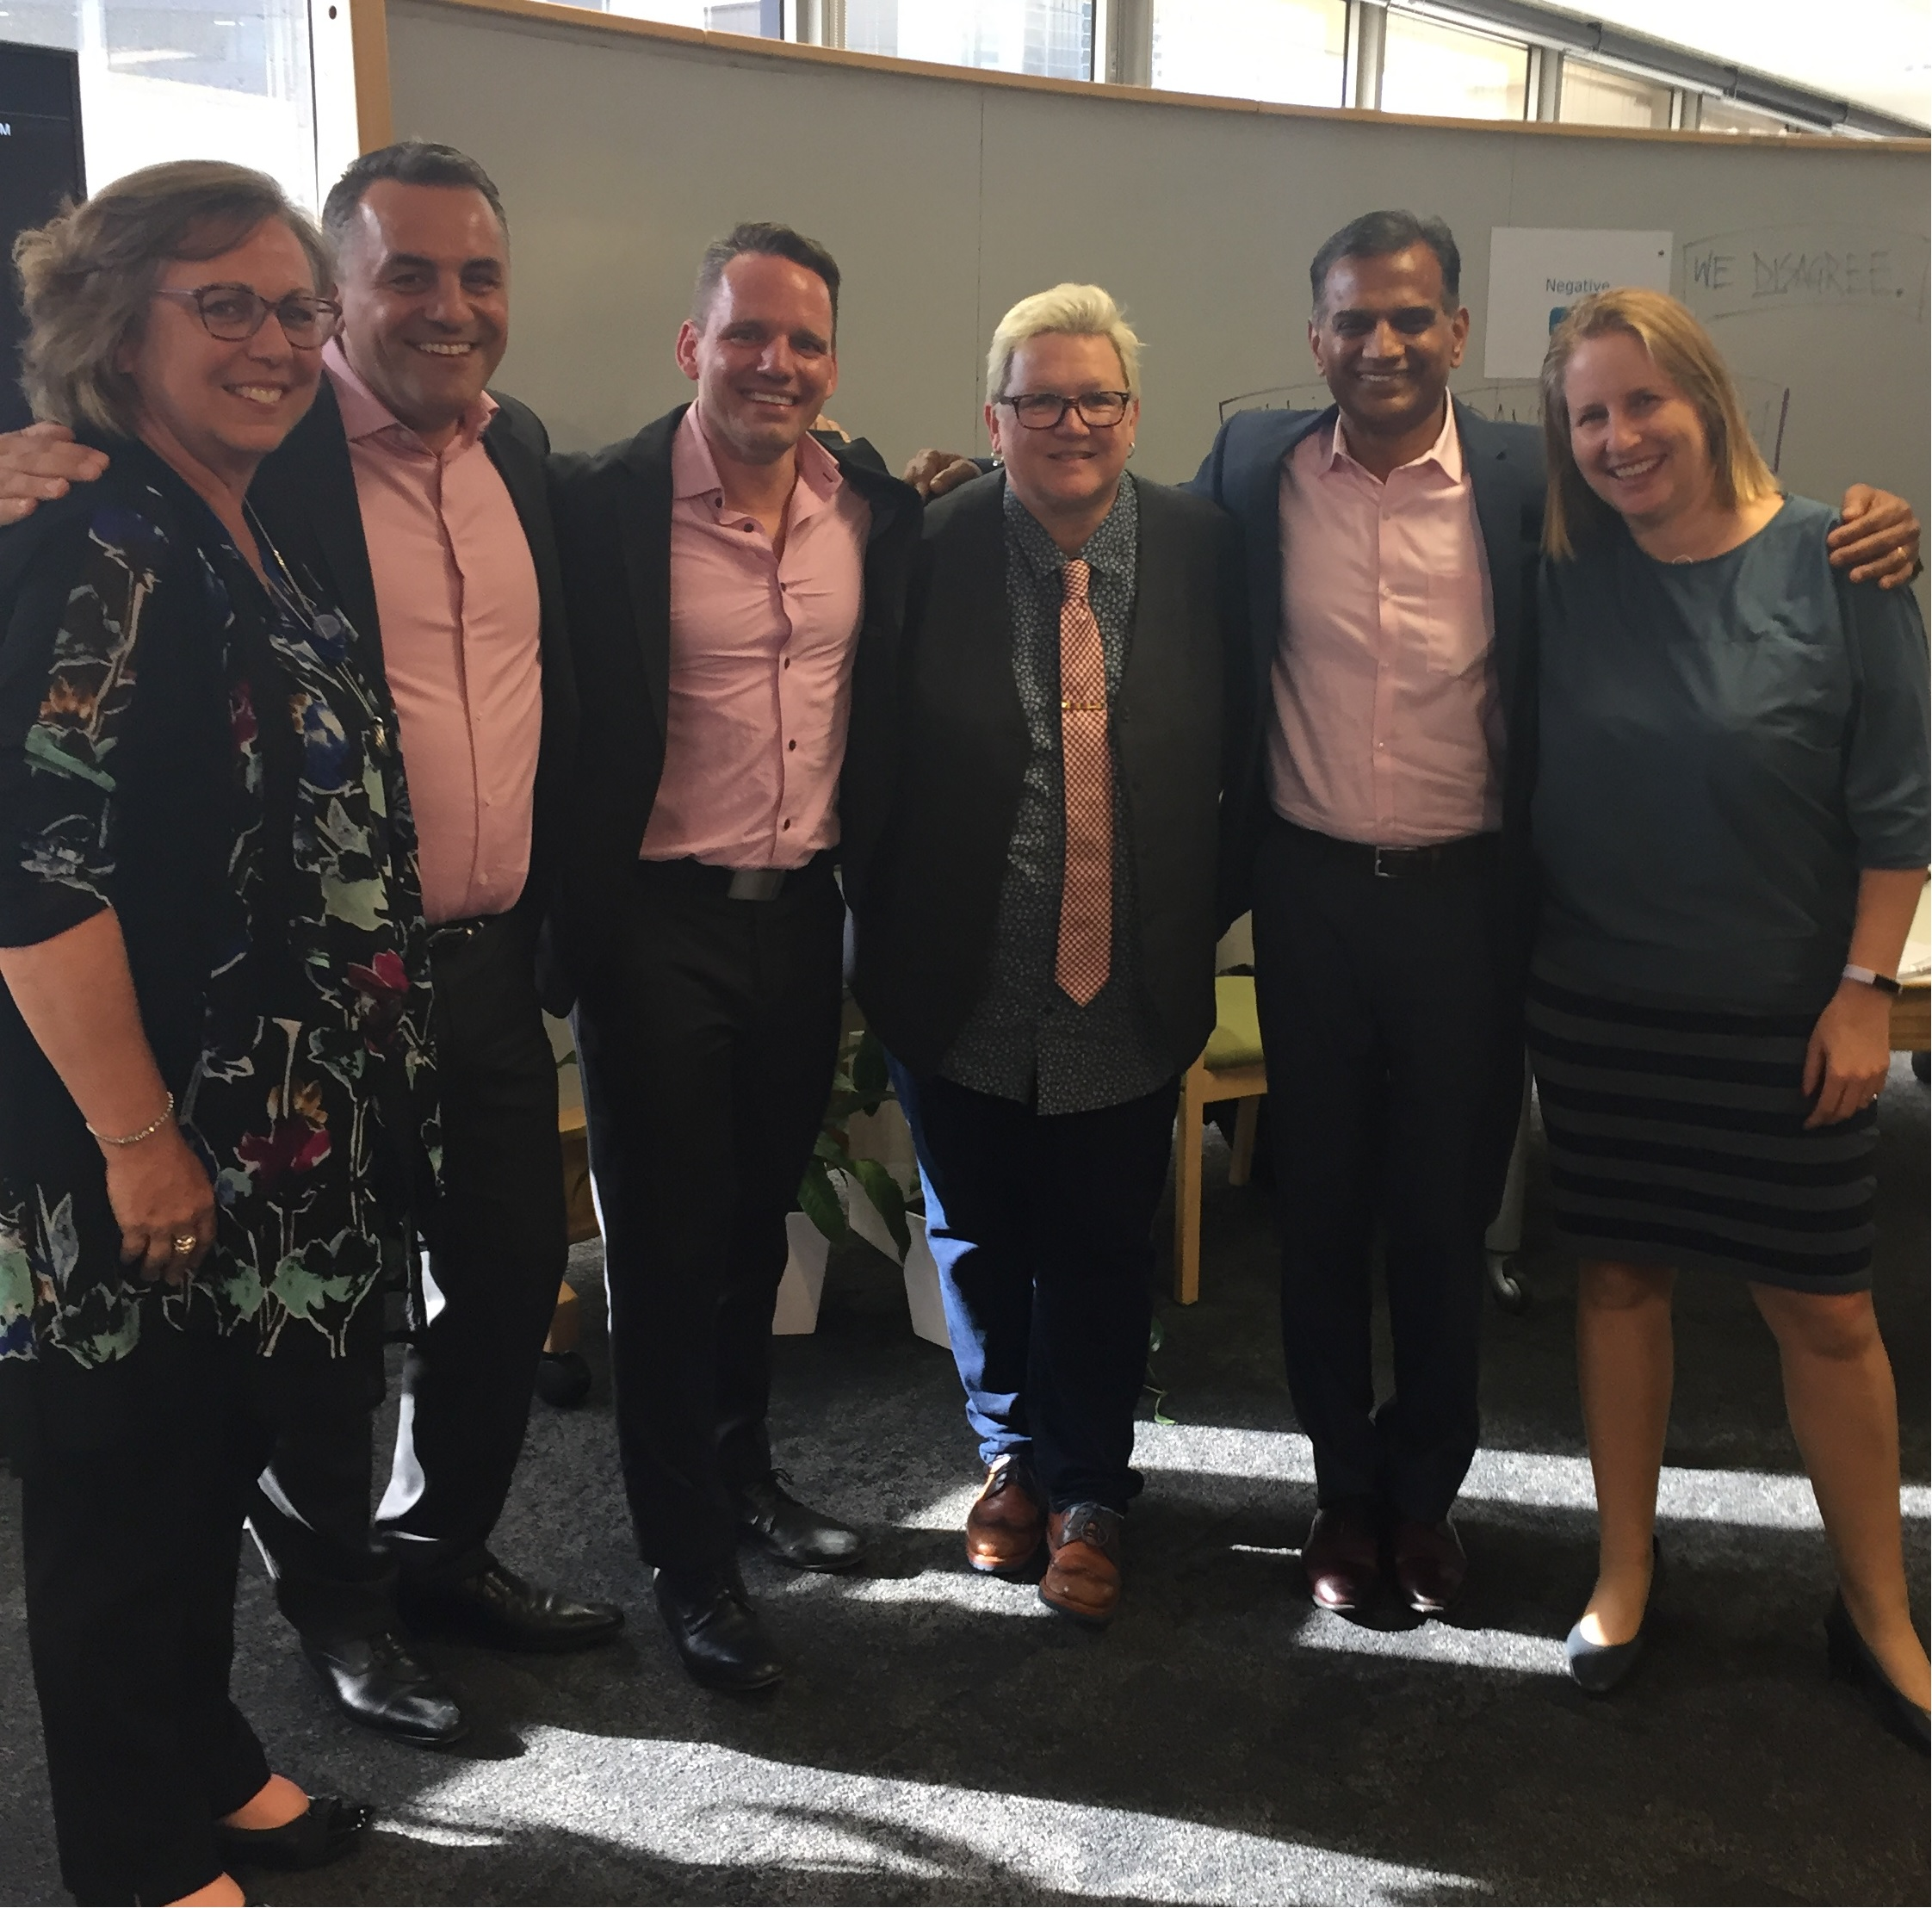 Members of our Women@Capgemini Australia team: Michelle Butler, Danny Klaic, Elliot Dowling, Steph Sands, Siva Kumar and Cathy Aboud.